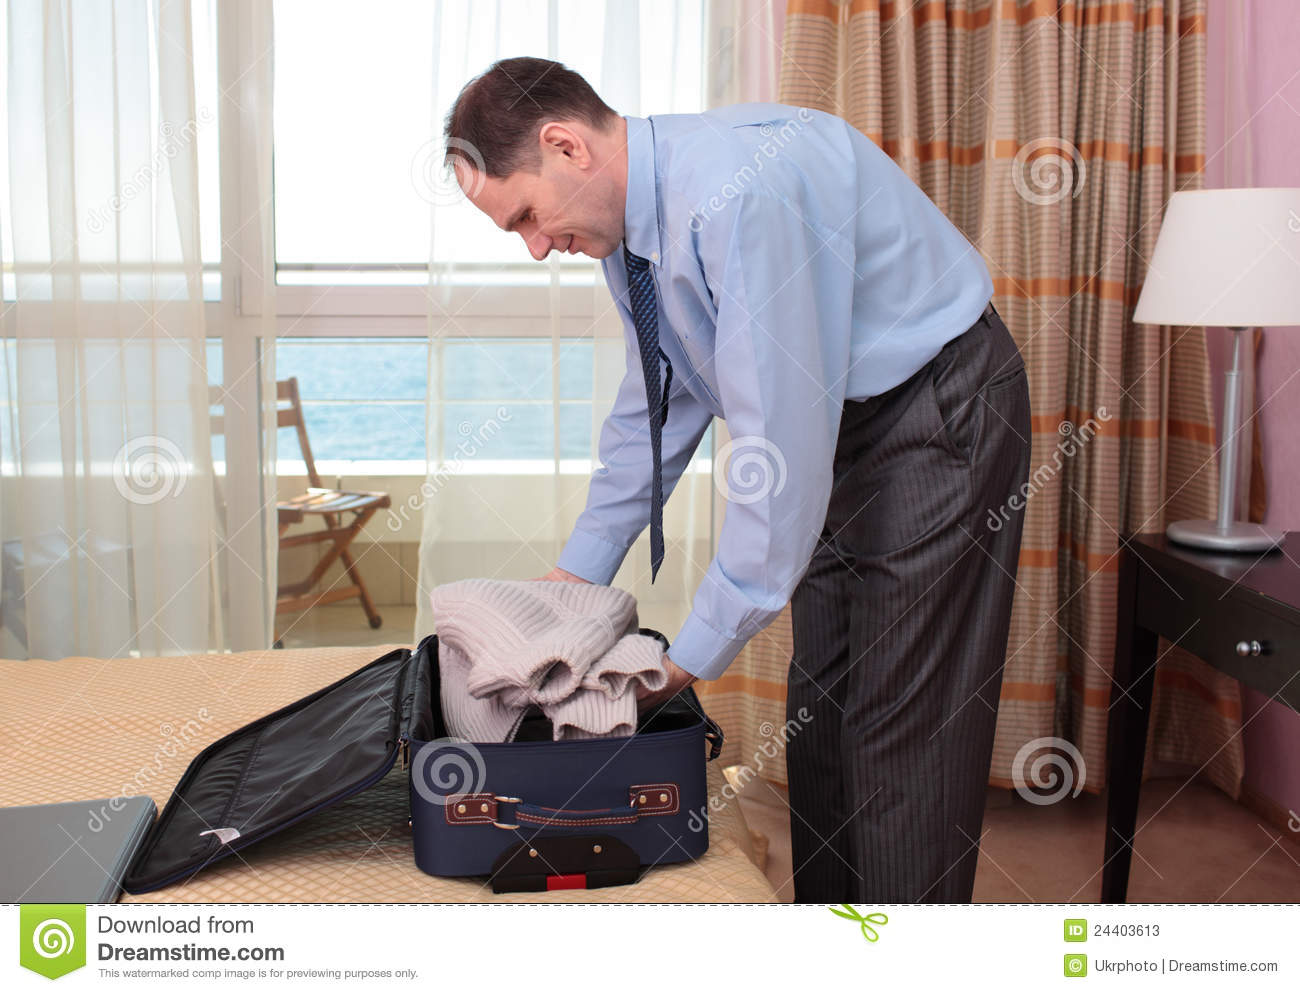 Businessman packing a suitcase